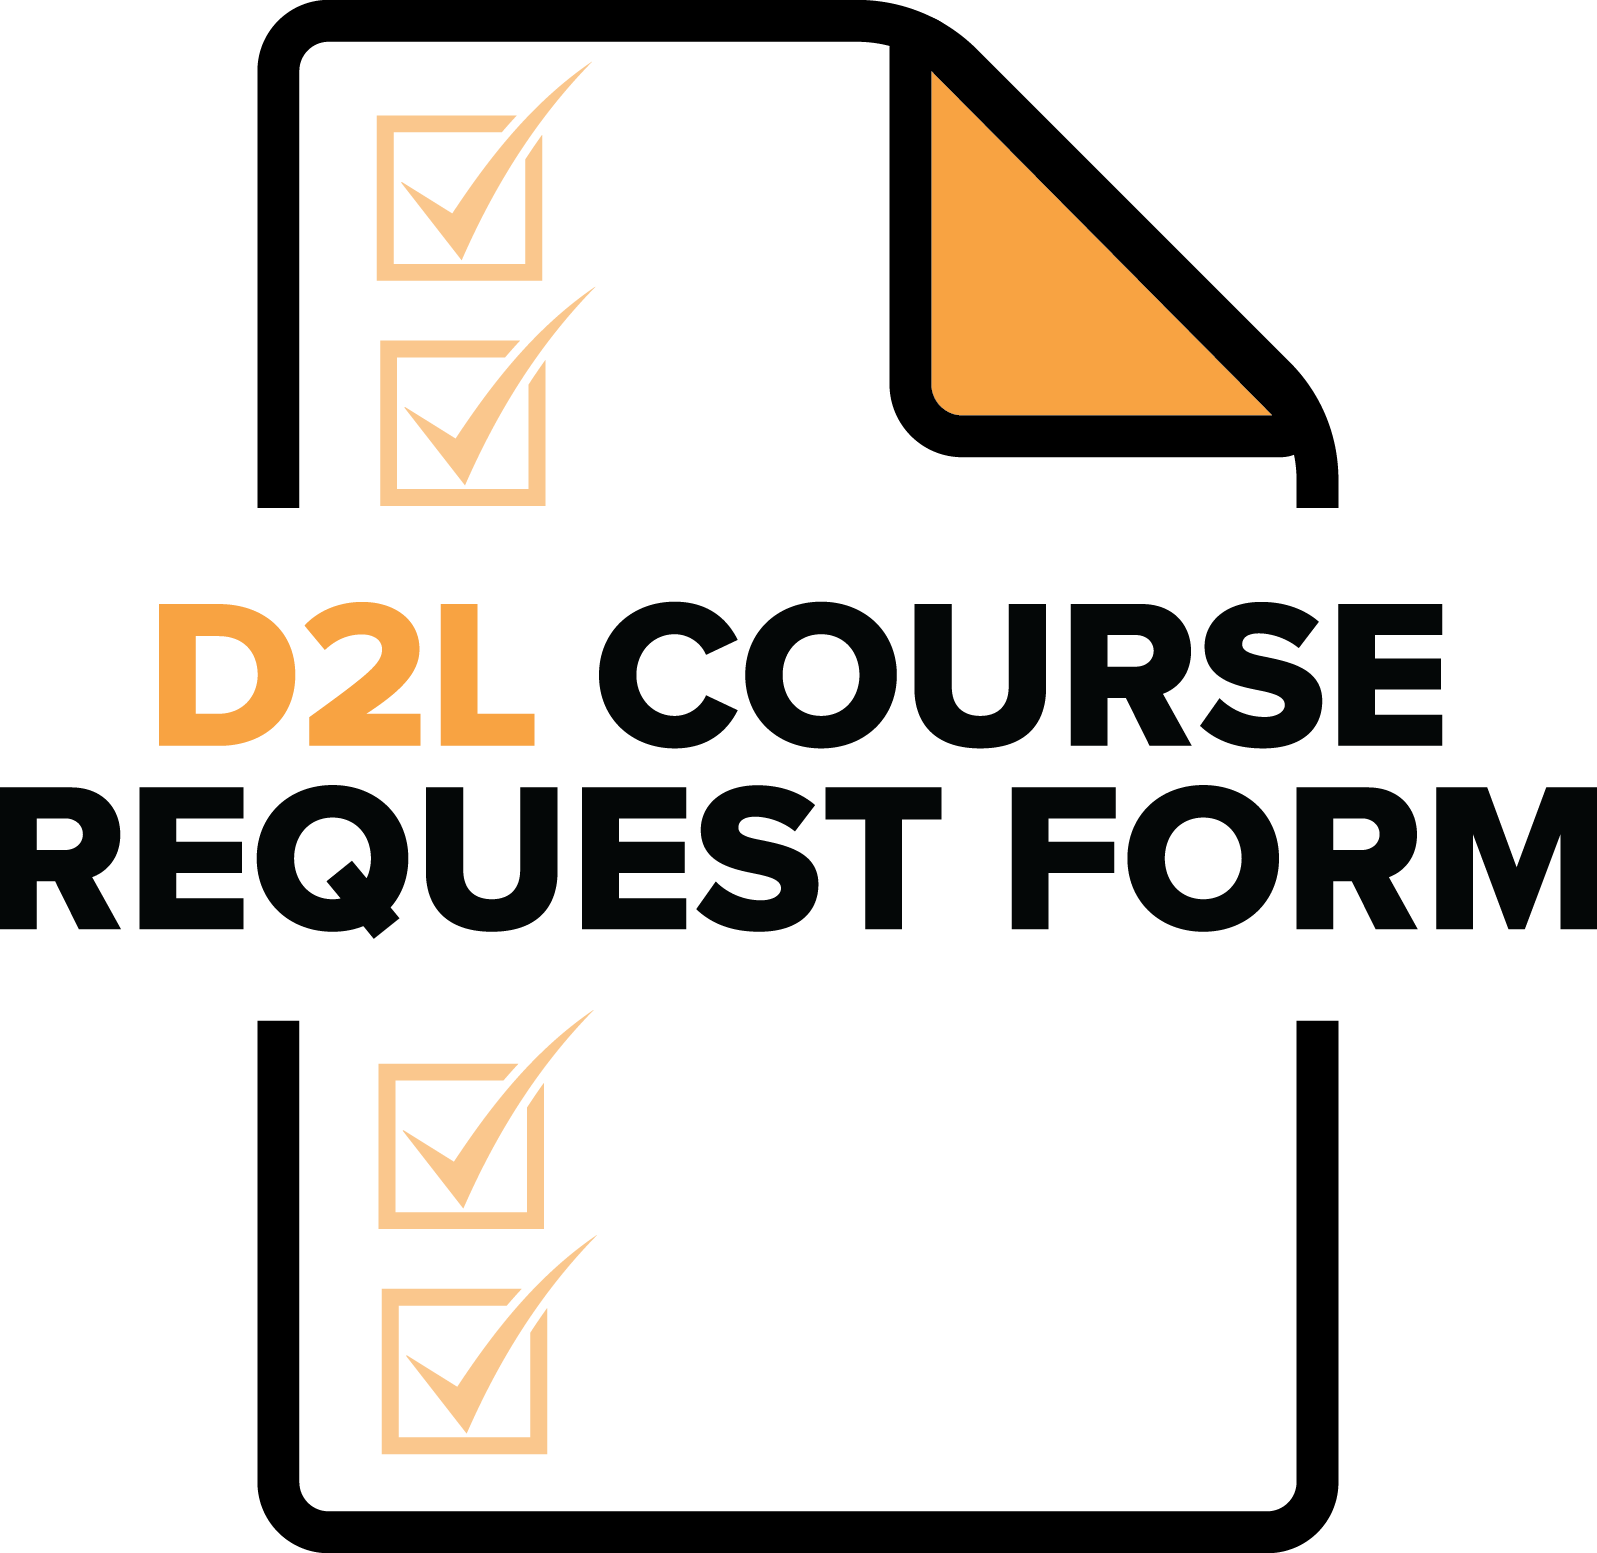 d2l course request form